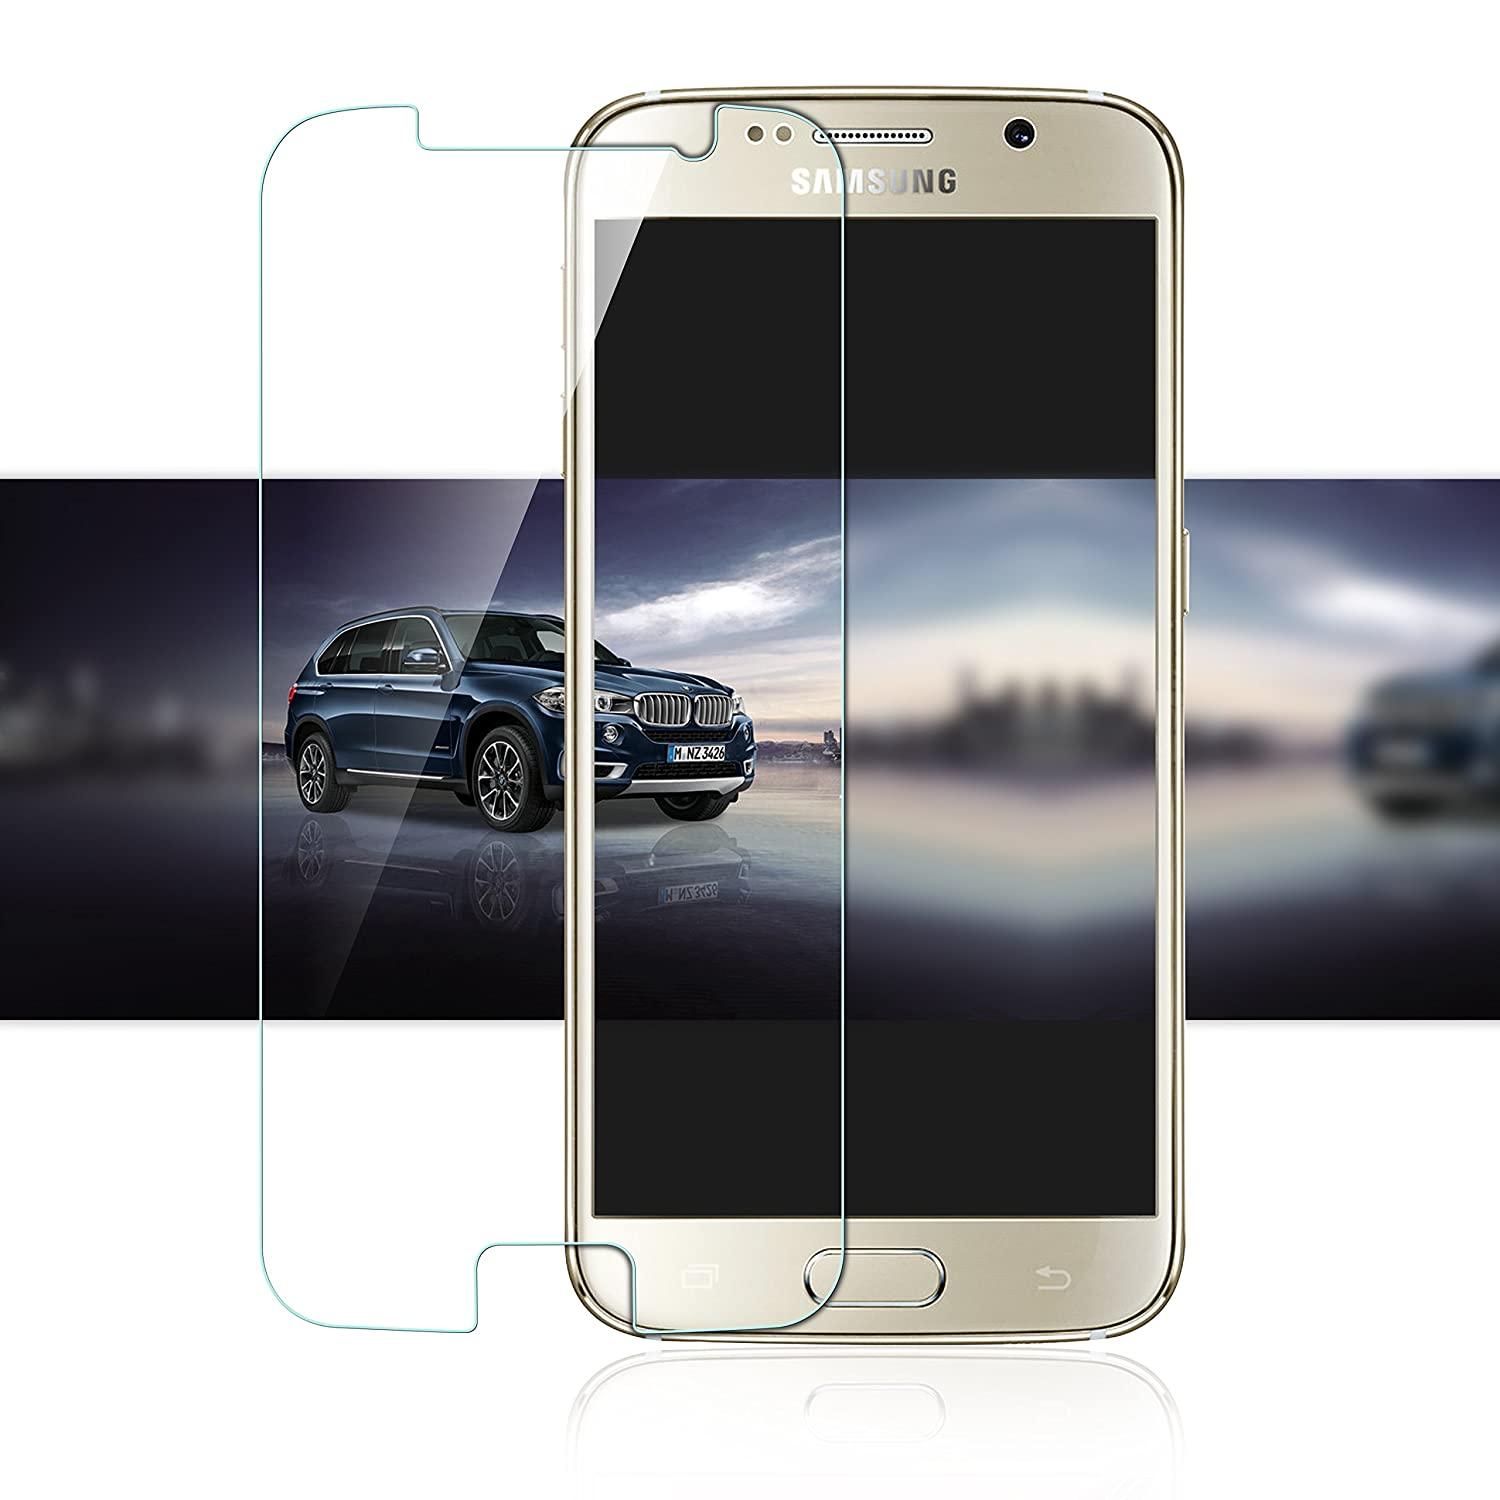 glass screen guard samsung,tempered glass screen protector,tempered glass,tempered glass samsung s2,galaxy note 2 tempered glass,samsung tempered glass